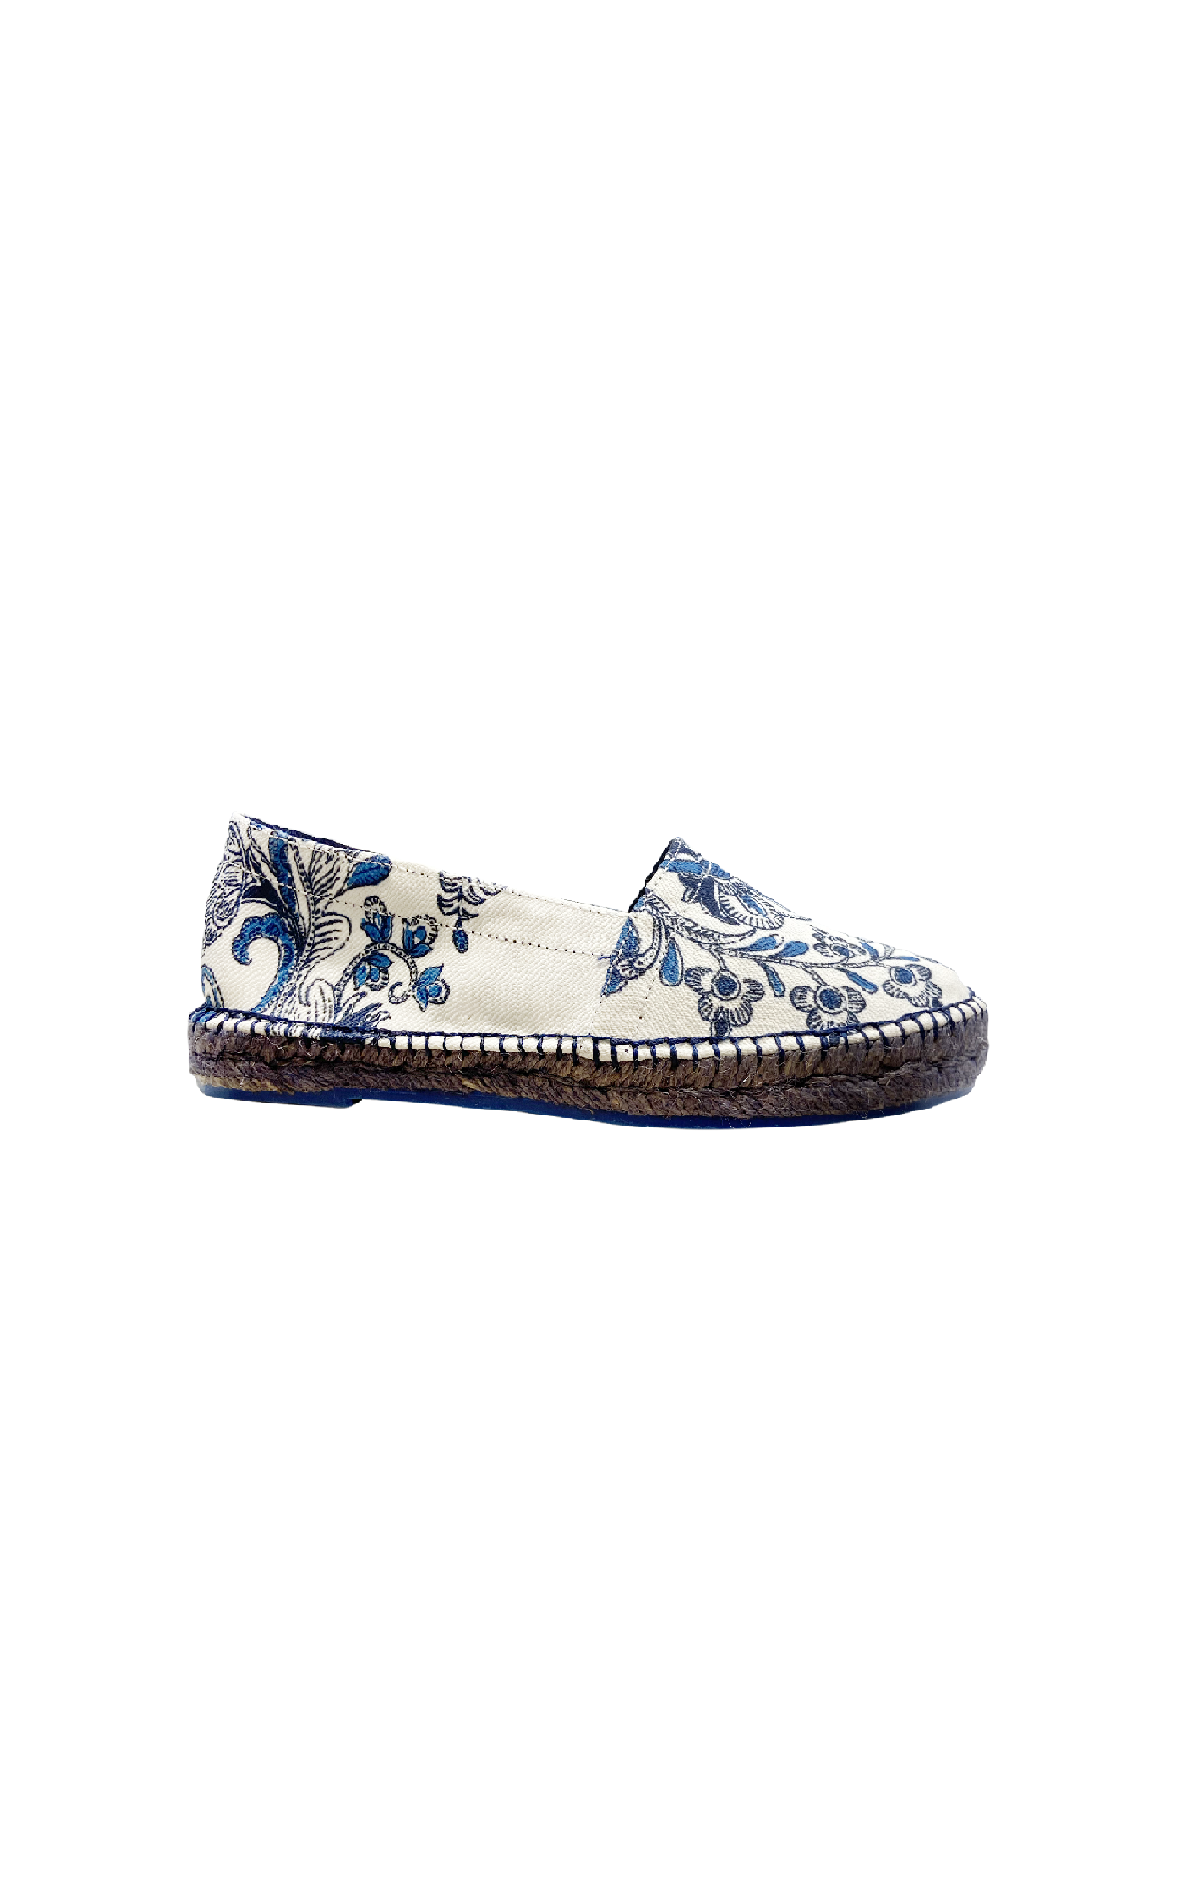 White espadrilles with blue flowers Naulover